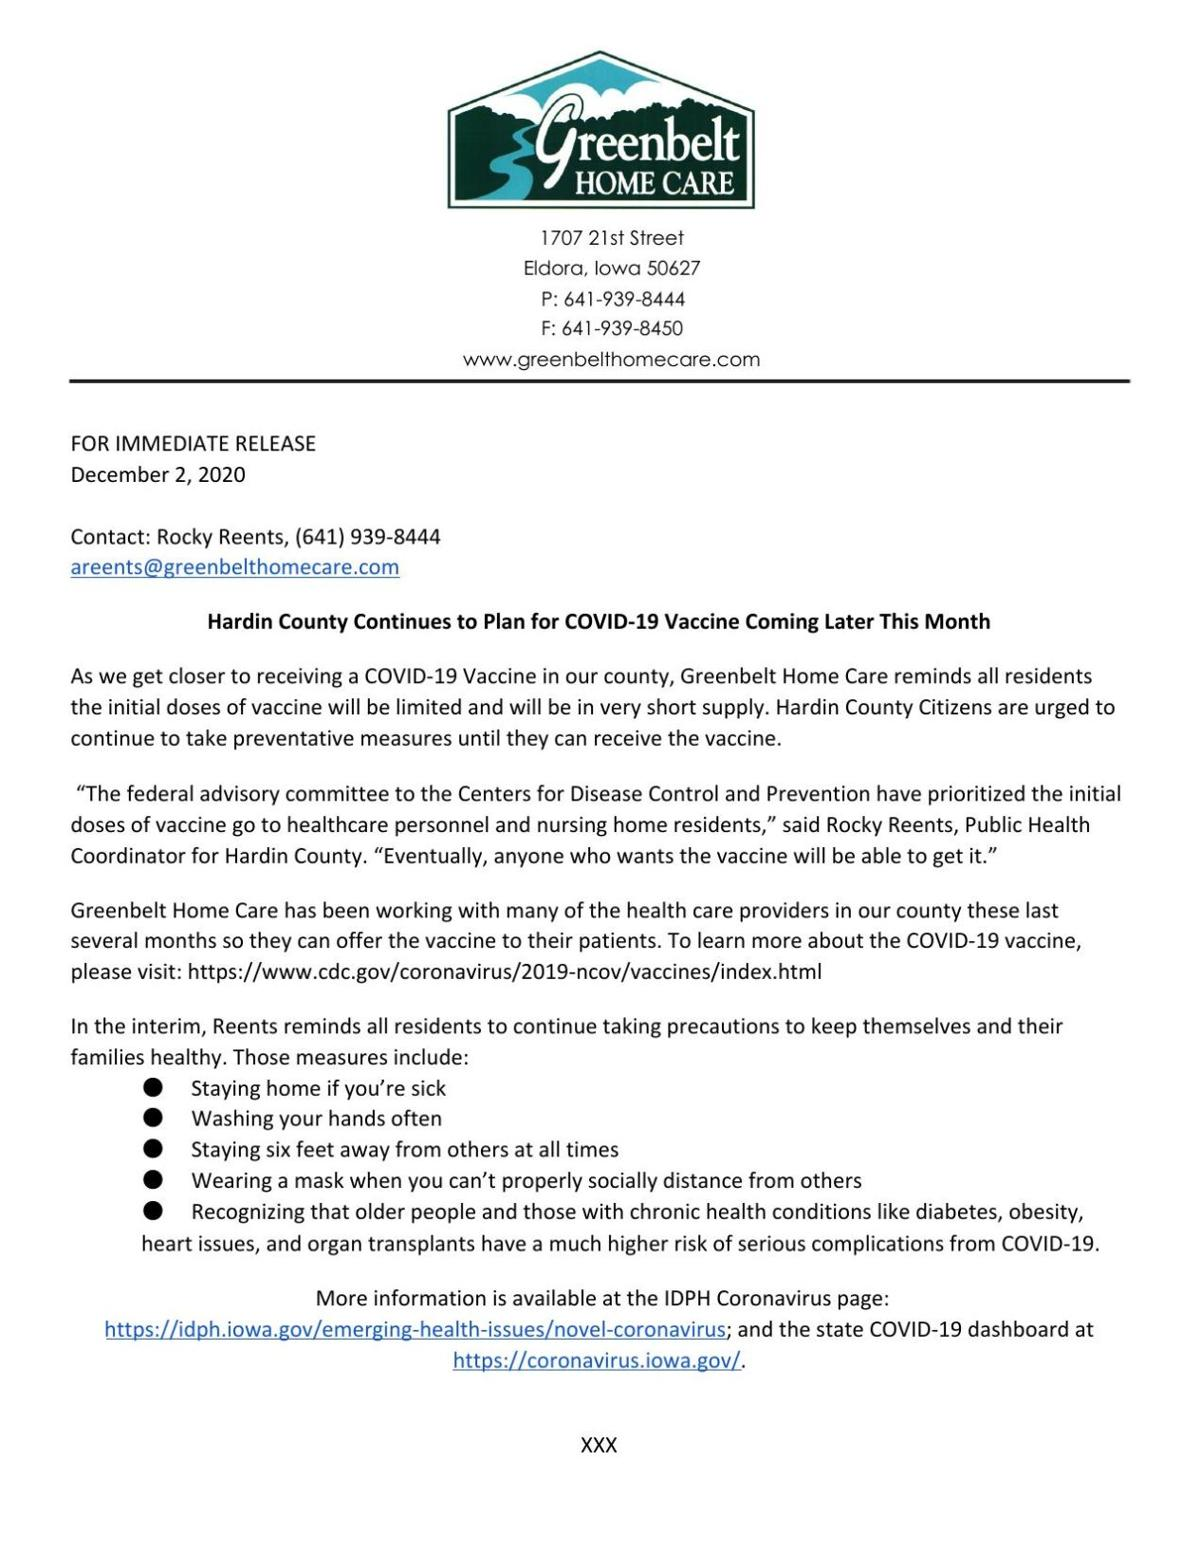 Hardin County Public Health Press Release 12-2-2020